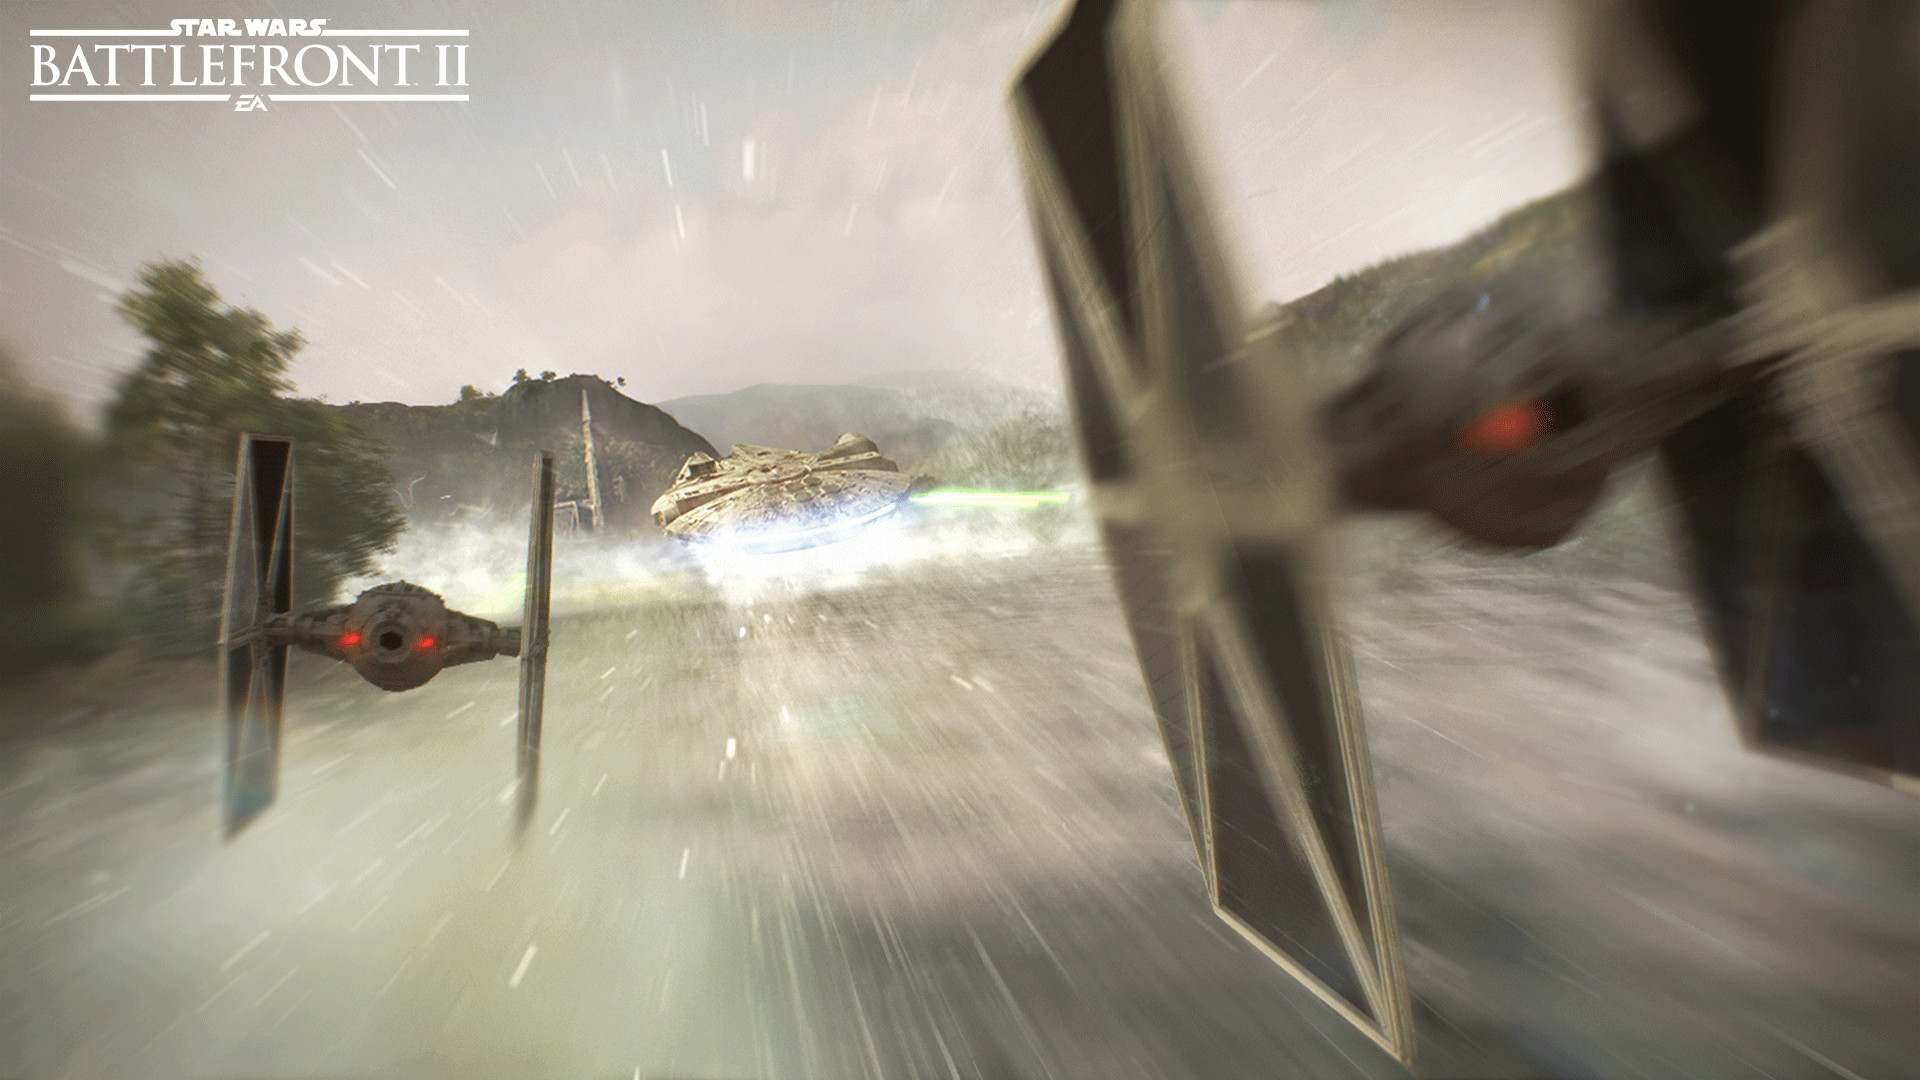 Star Wars: Battlefront II screenshot 10619